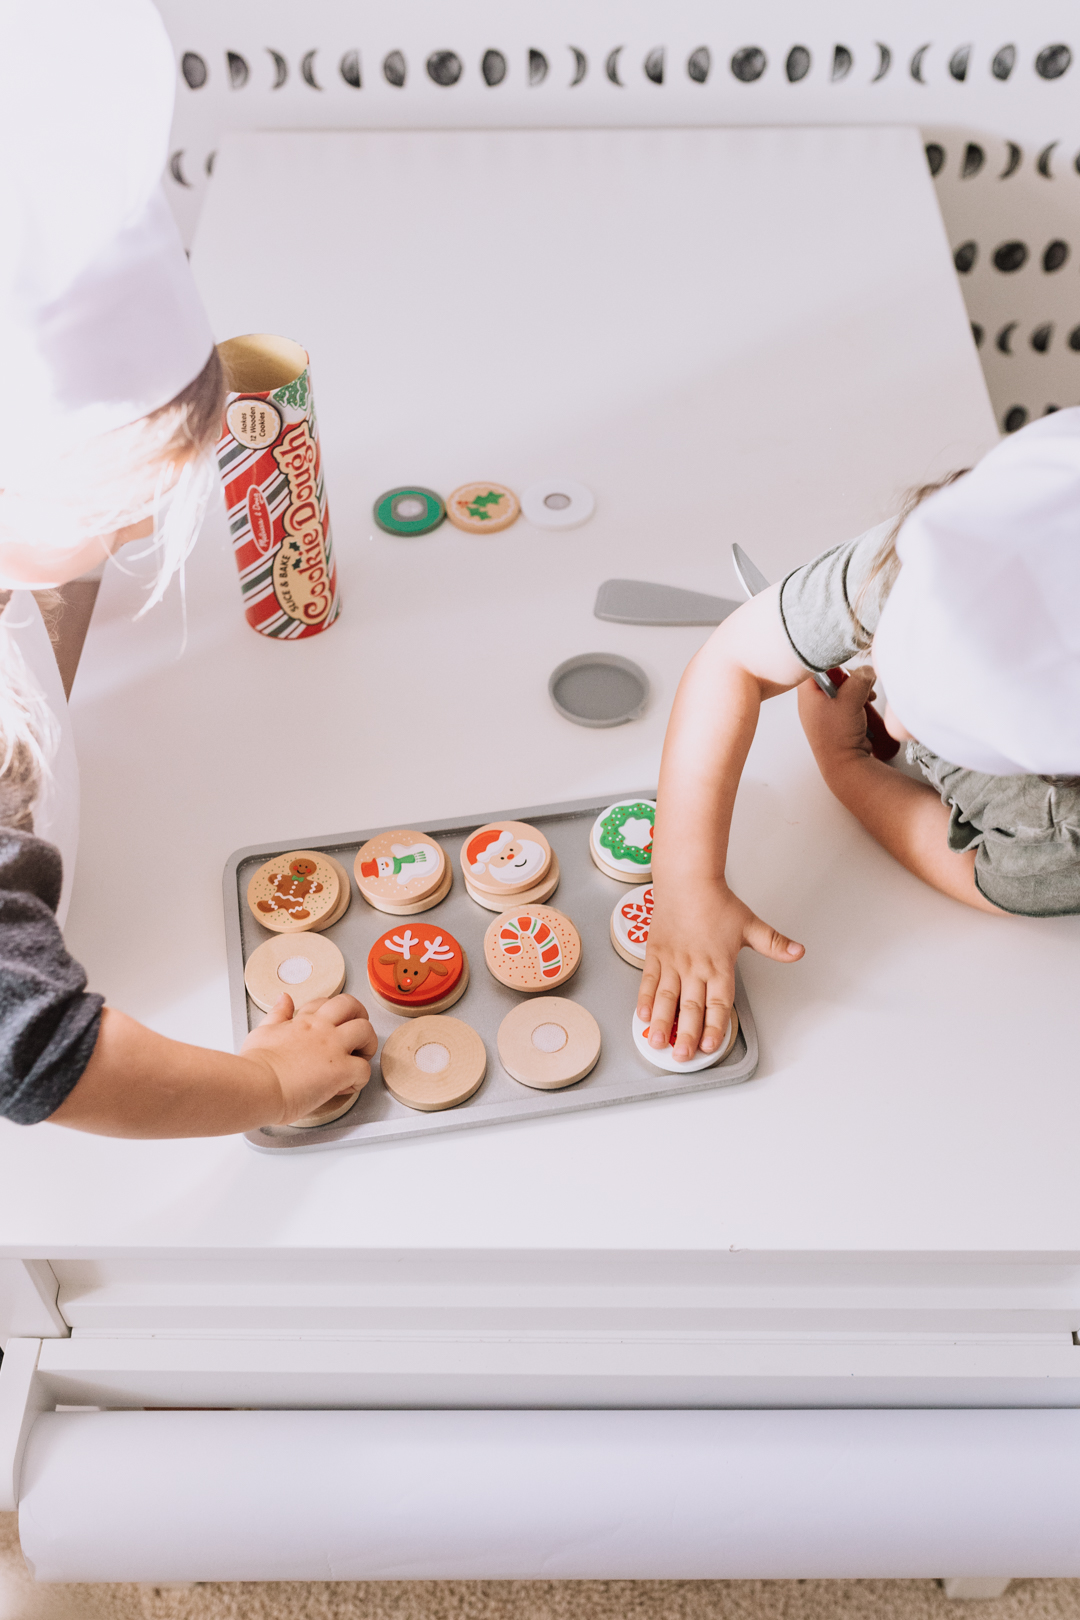 pretend christmas cooking baking with melissa and doug set from kohl's | thelovedesignedlife.com #christmascookies #imaginaryplay #christmastime #holidaygifts